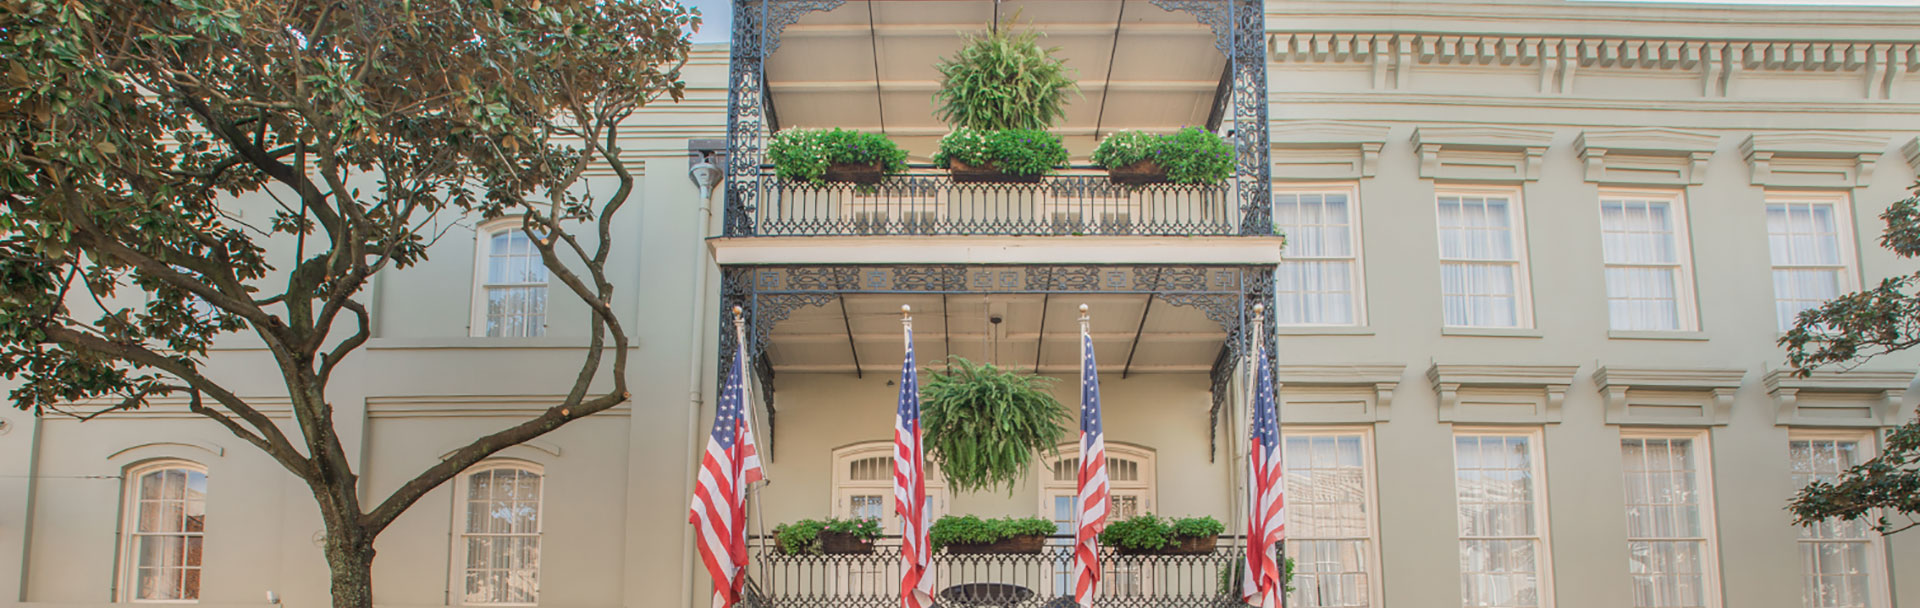 Bienville House in the French Quarter